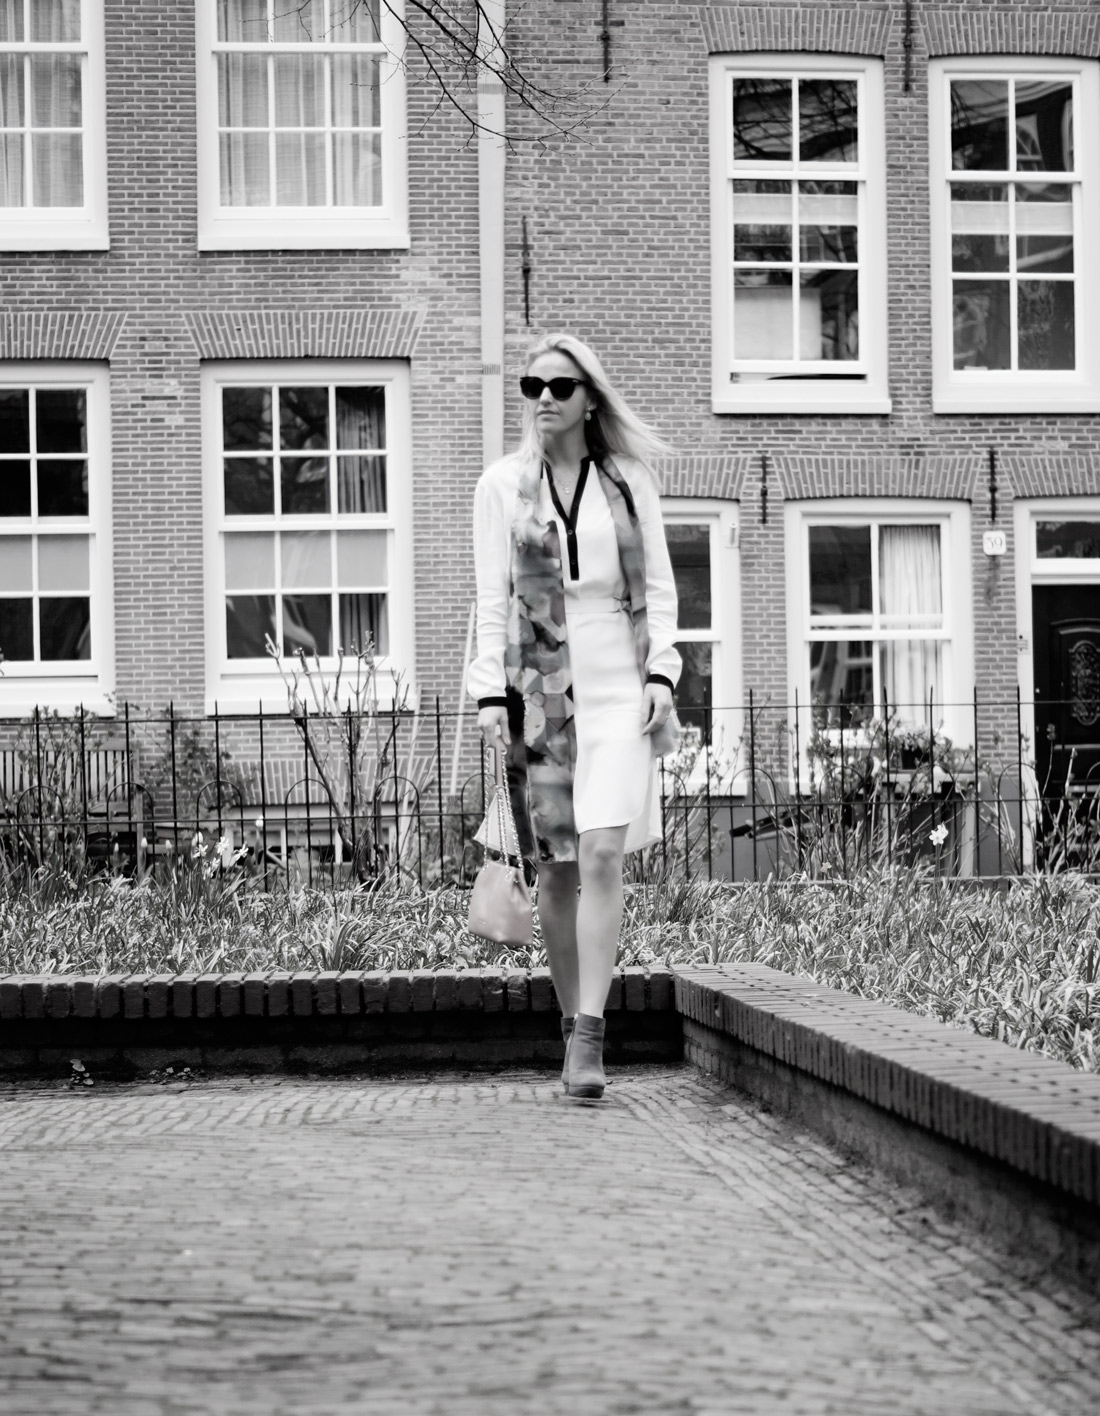 Bag-at-you---Styleblogger---Michael-Kors-Bag---Outfit-Spring---Amsterdam